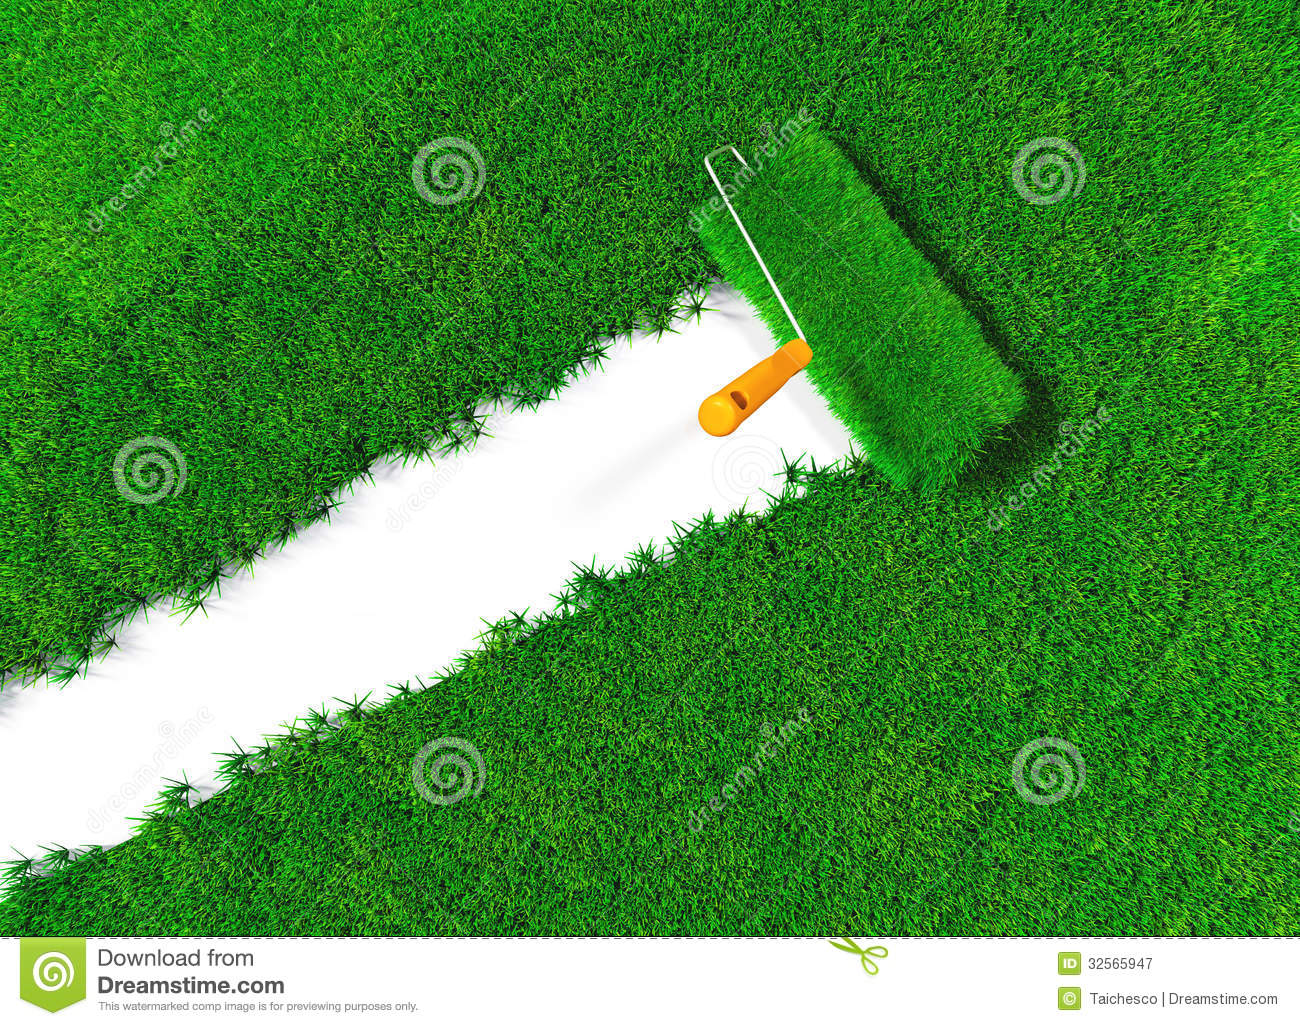 Cover The Ground With Grass Royalty Free Stock Photography.